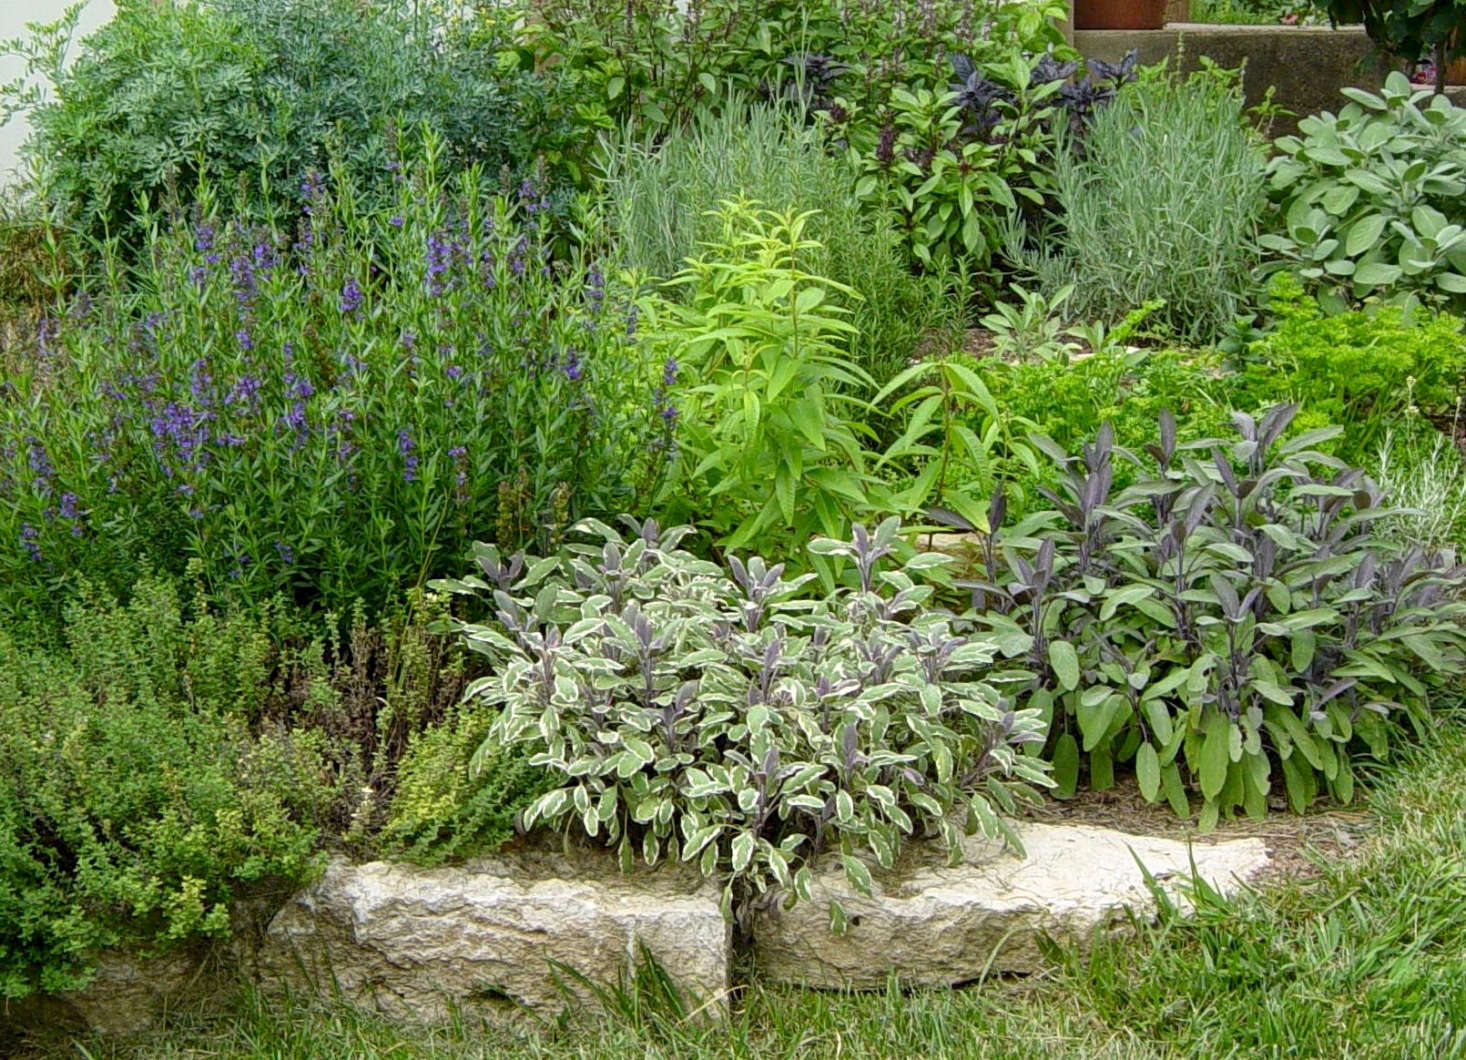 Hyssop (left) and other herbs including sage and lavender are available from Geo Growers in Austin, Texas. For more information and prices, see Geo Growers.